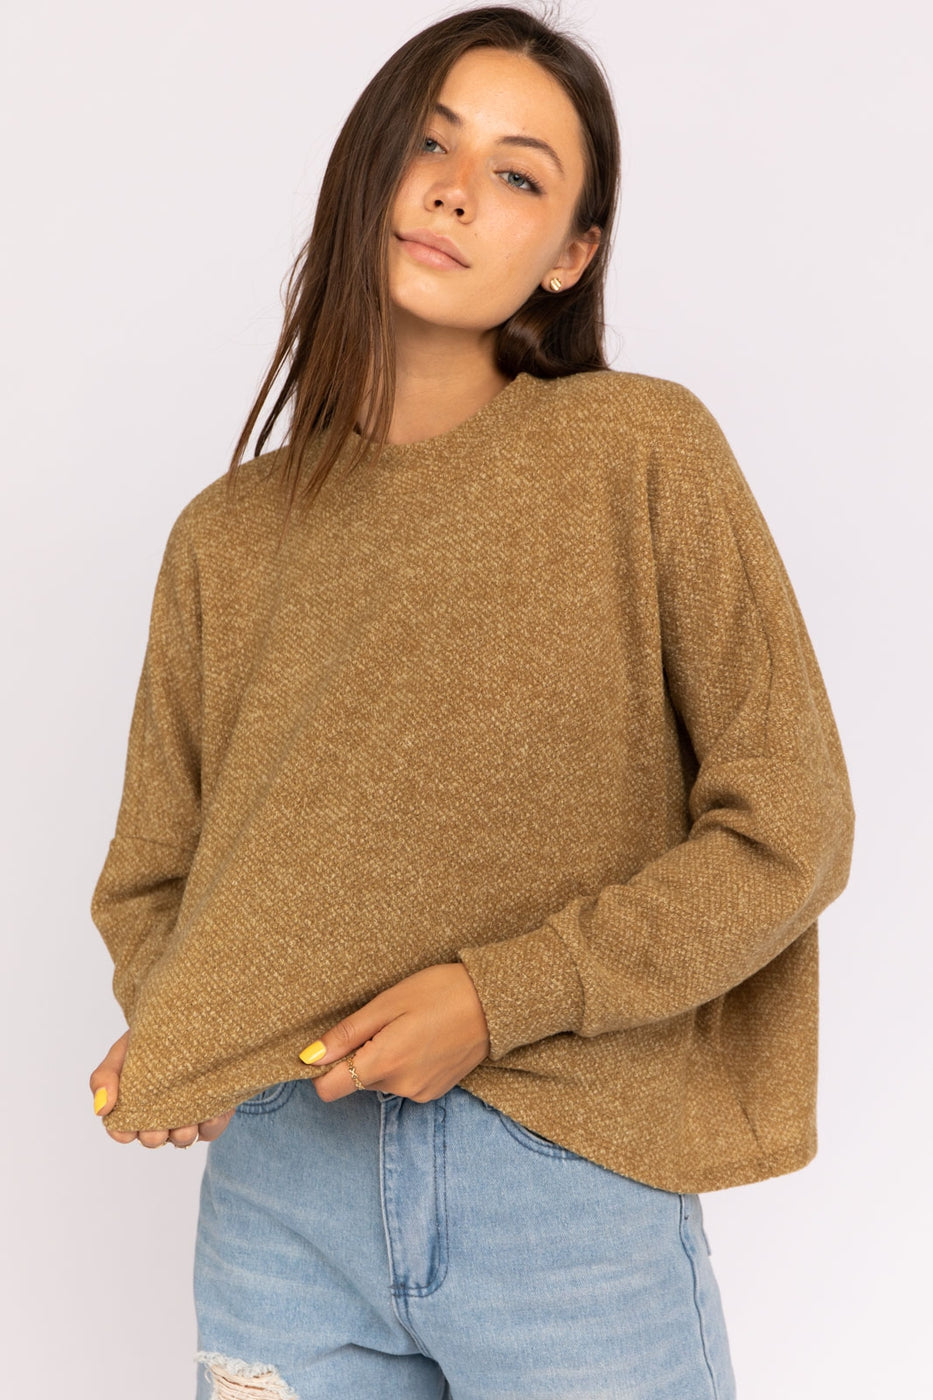 Asymmetrical Crewneck Long Sleeve Knit Top Siin Bees